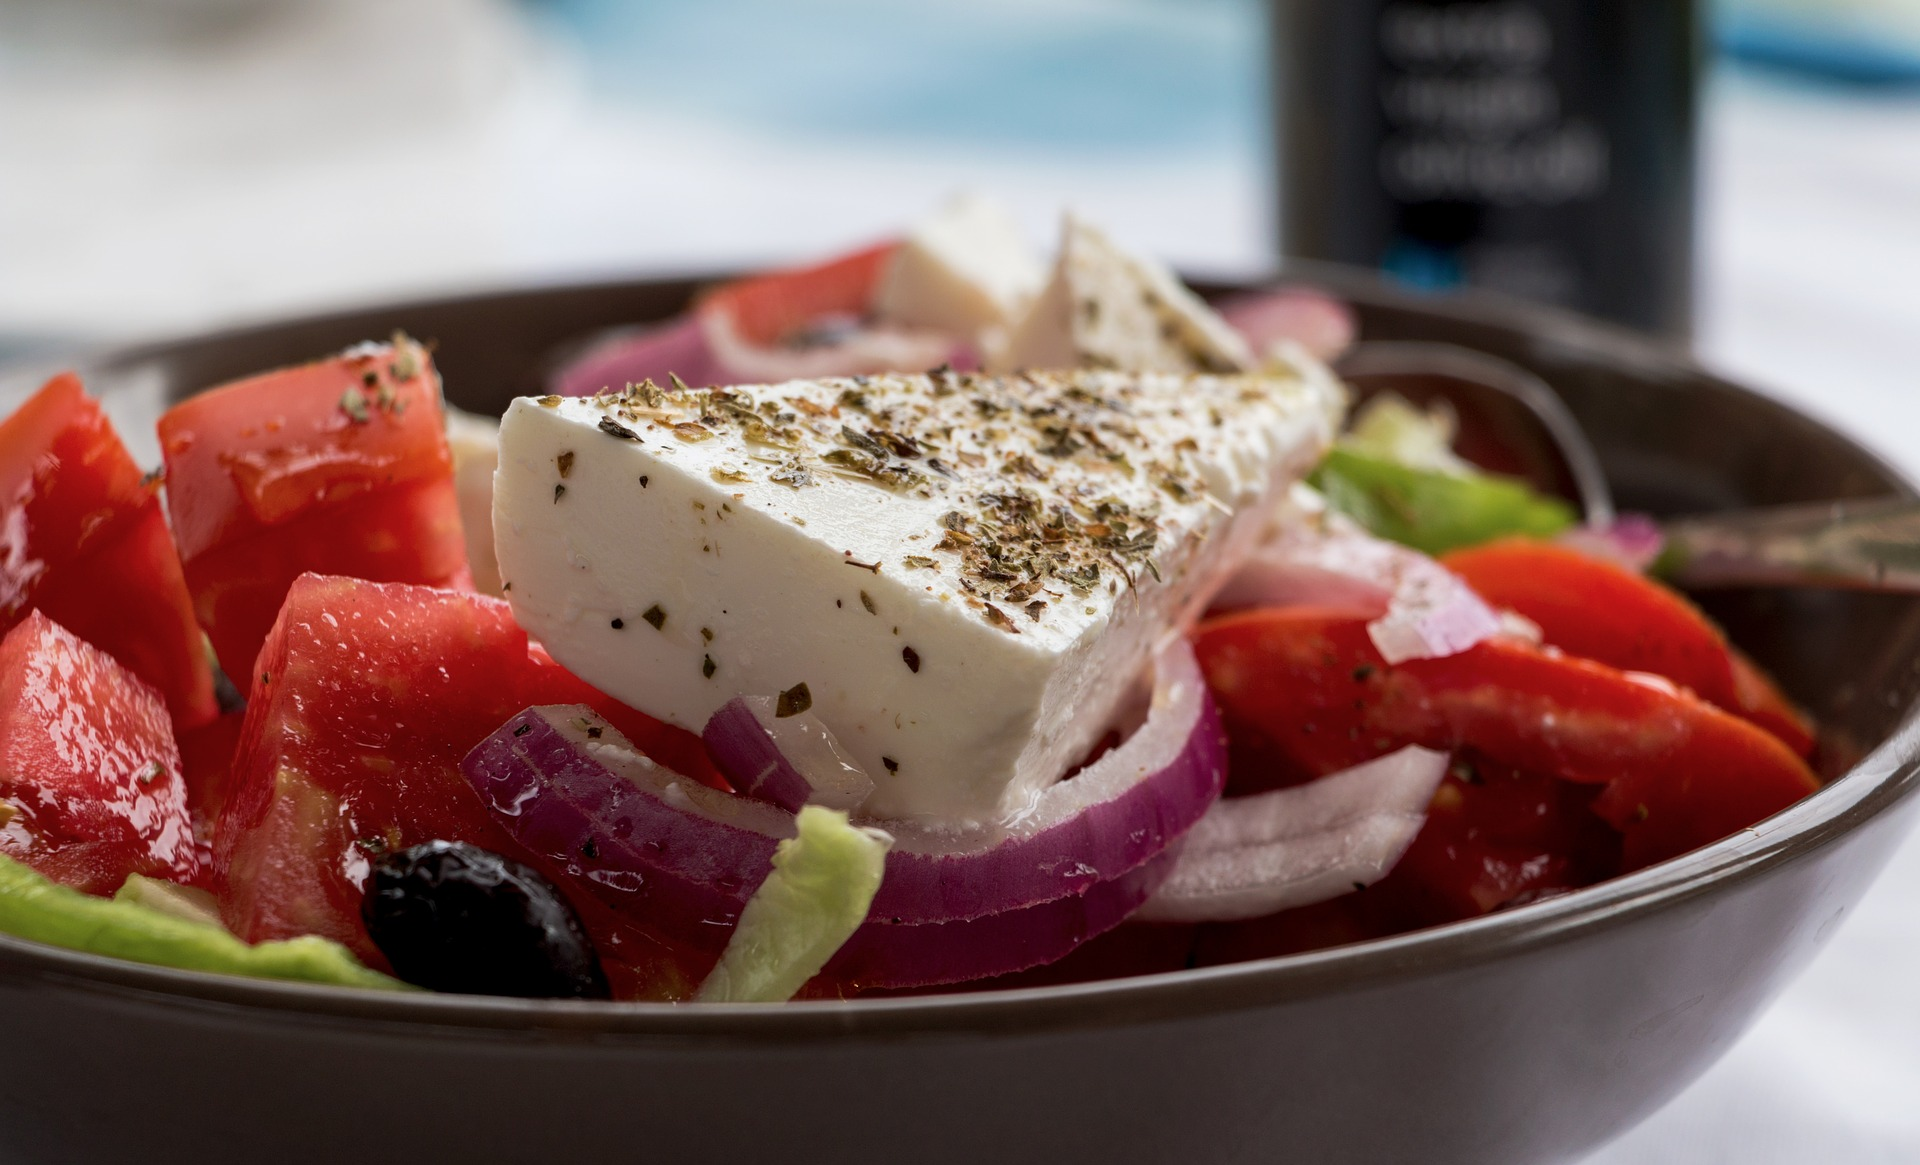 greek-salad-2104592_1920.jpg